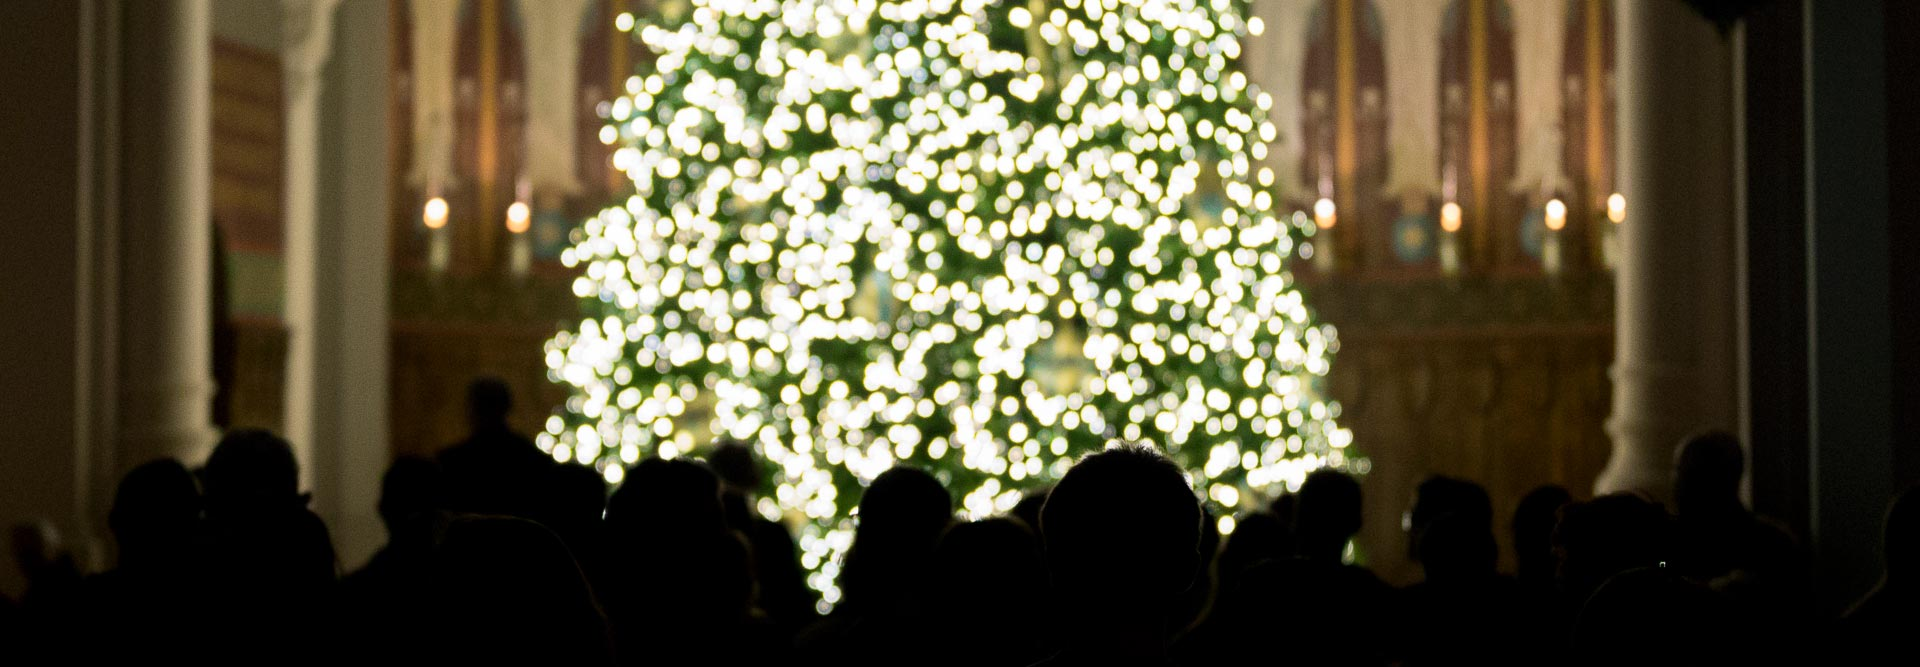 Lighting the Saint John's Tree - a beloved campus tradition